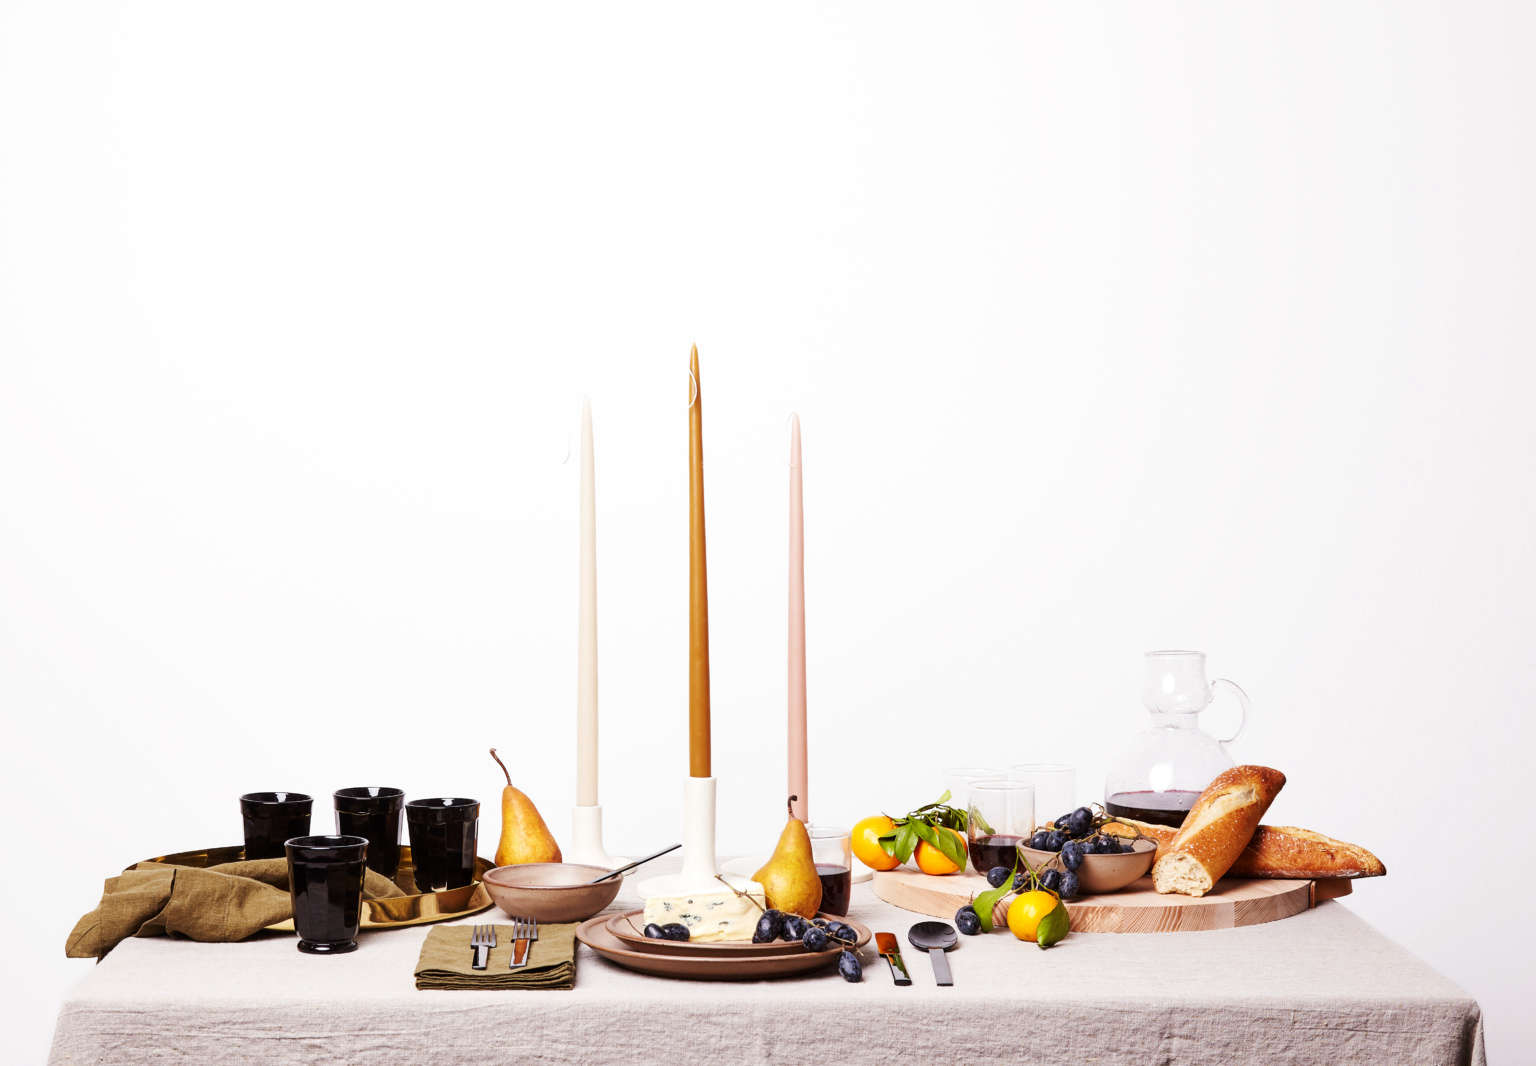 Enter to Win A Festive Holiday Tablescape Worth 1500 Curated by the Editors of Remodelista portrait 3